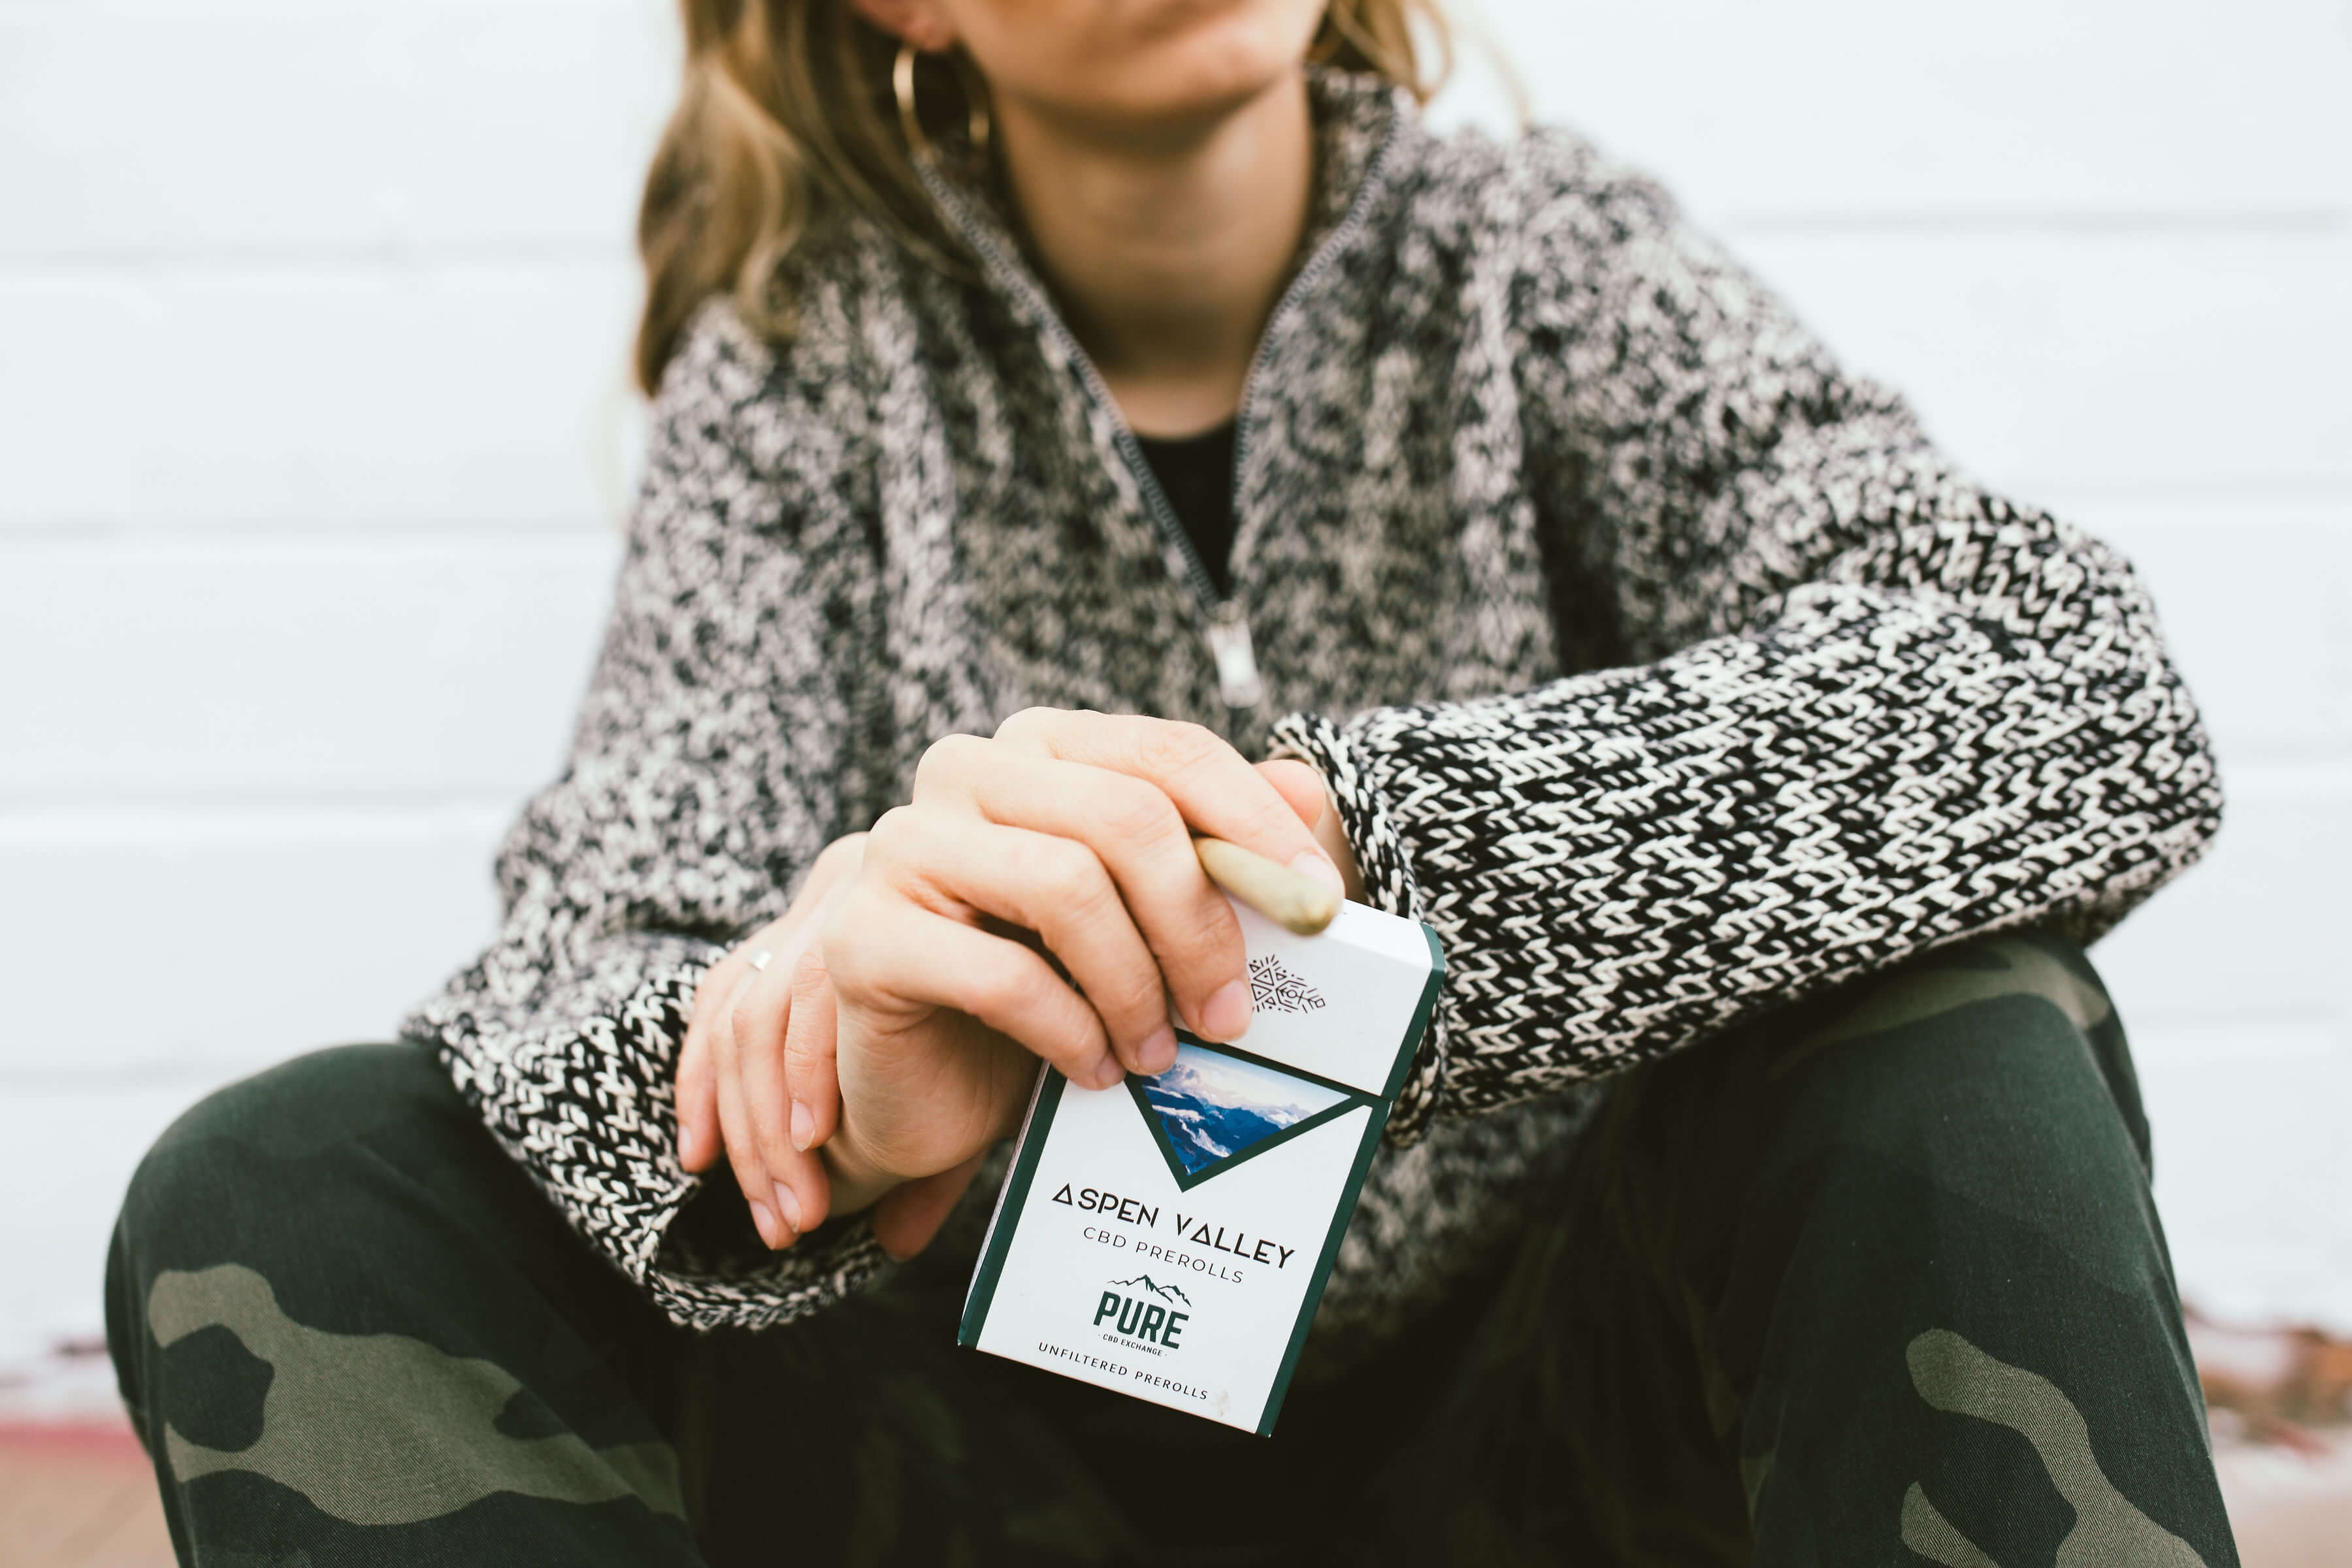 Girl sitting holding a pack of CBD Joints